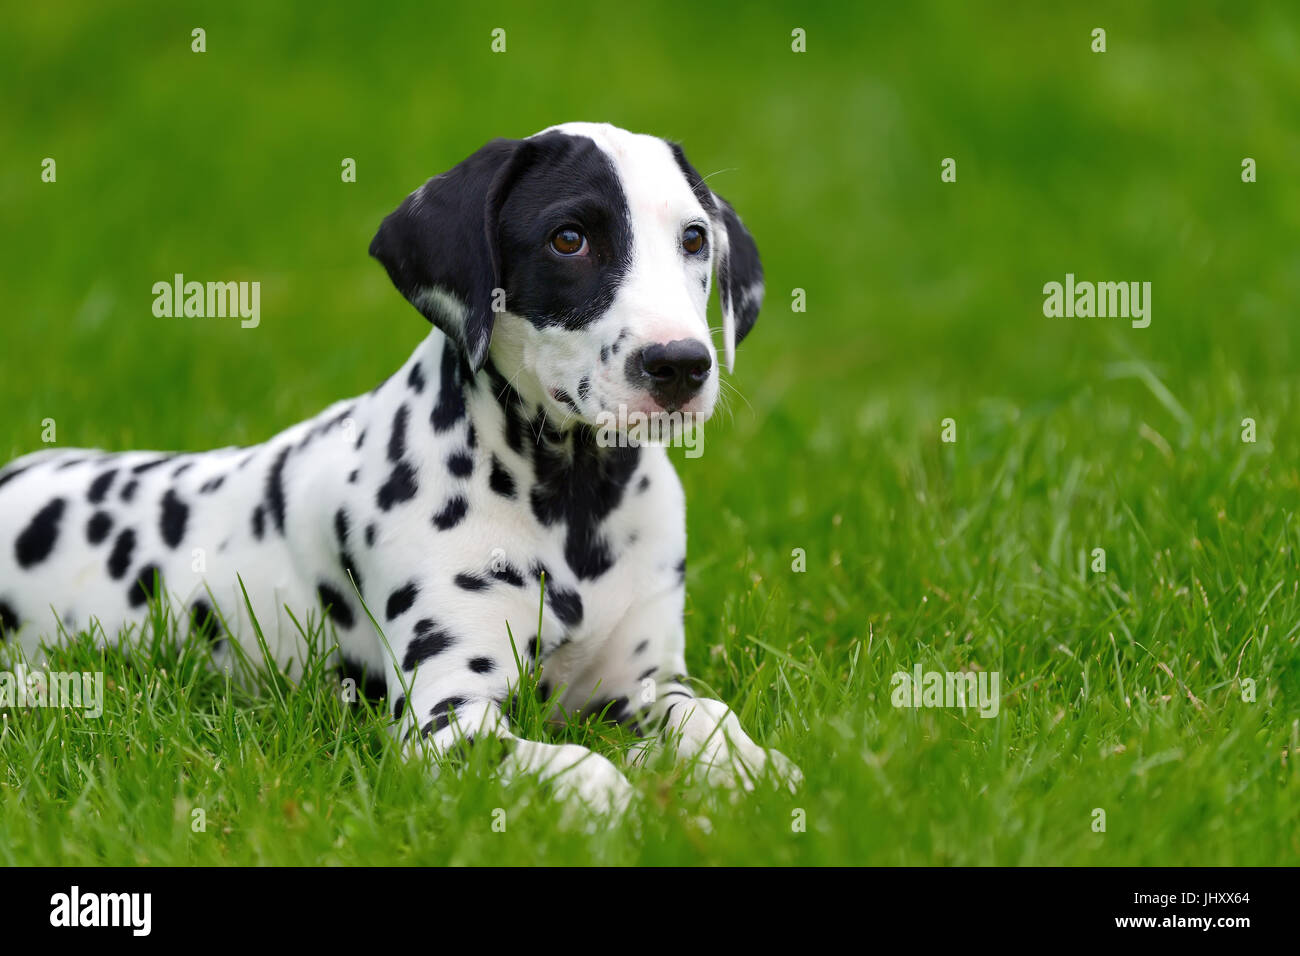 Adorable dalmatian dog outdoors in summer - Stock Image